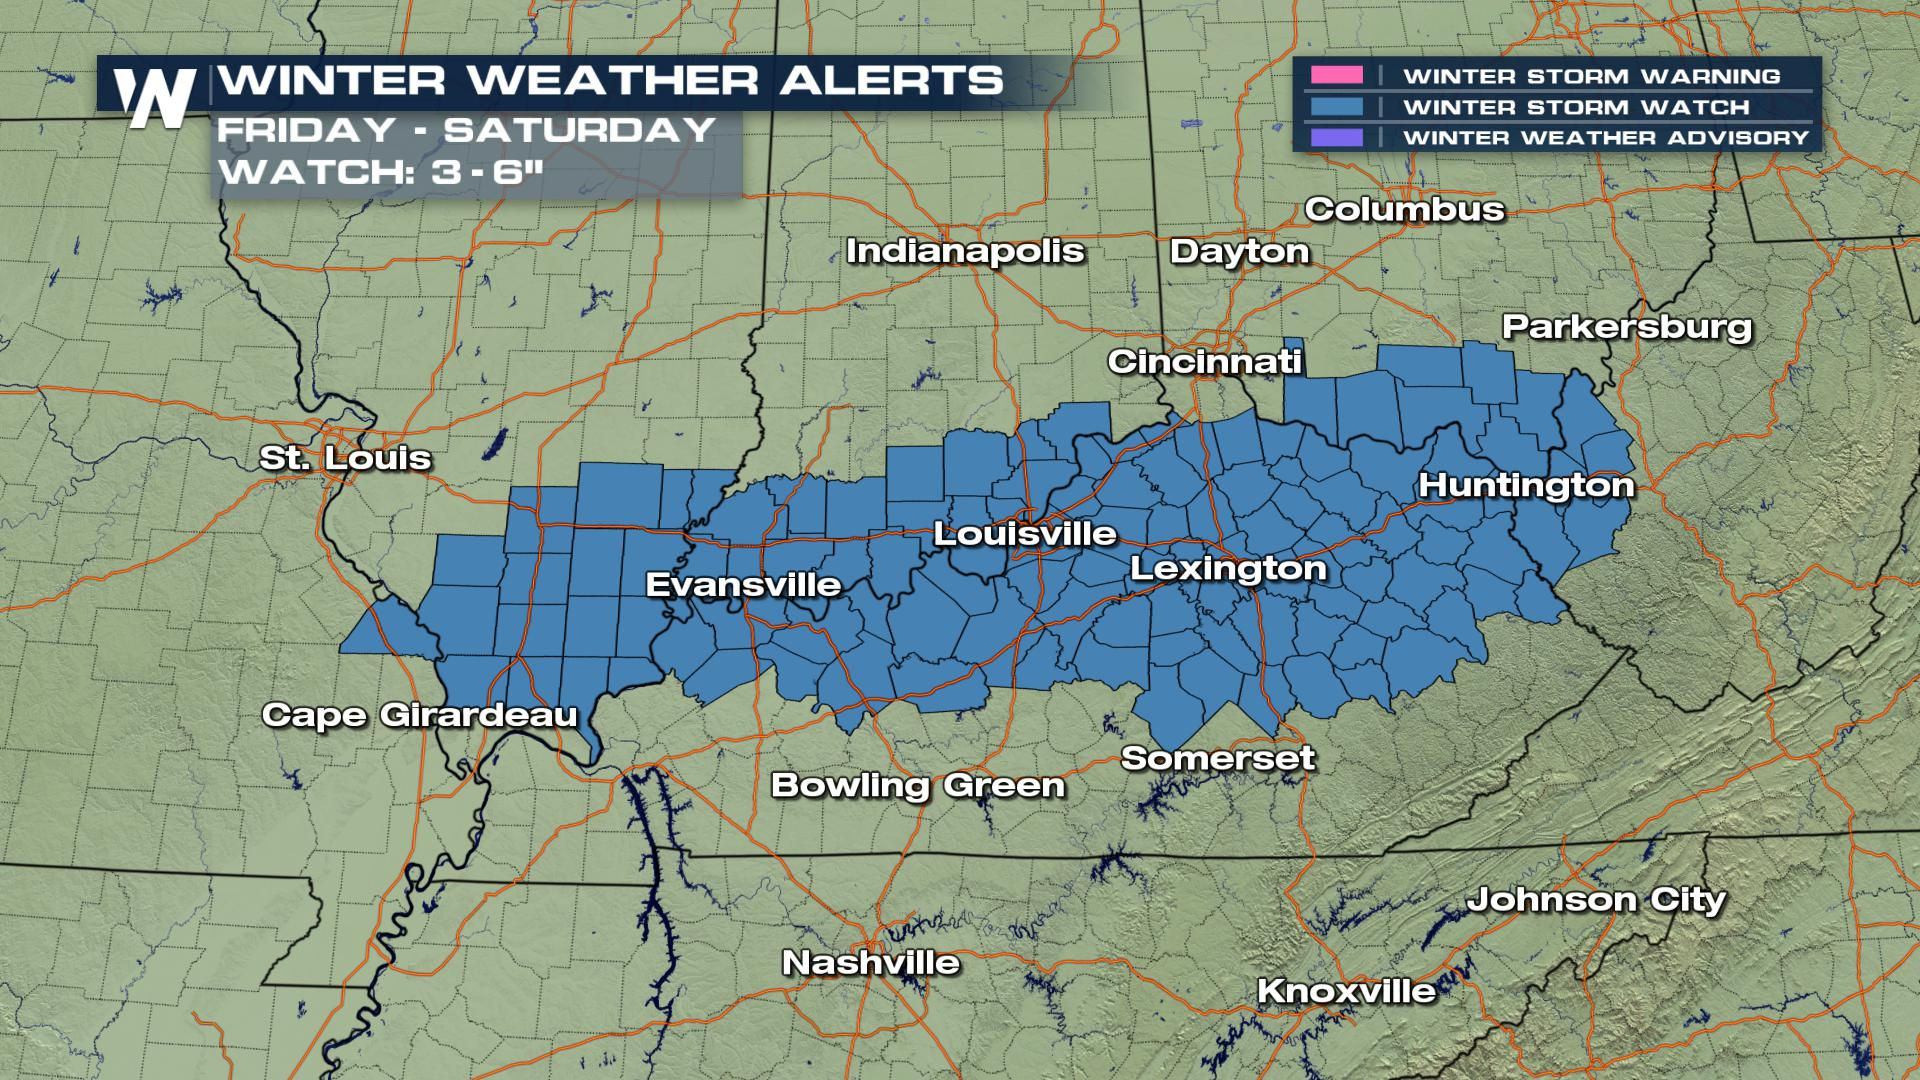 Ohio River Valley Weekend Snow Threat Weathernation